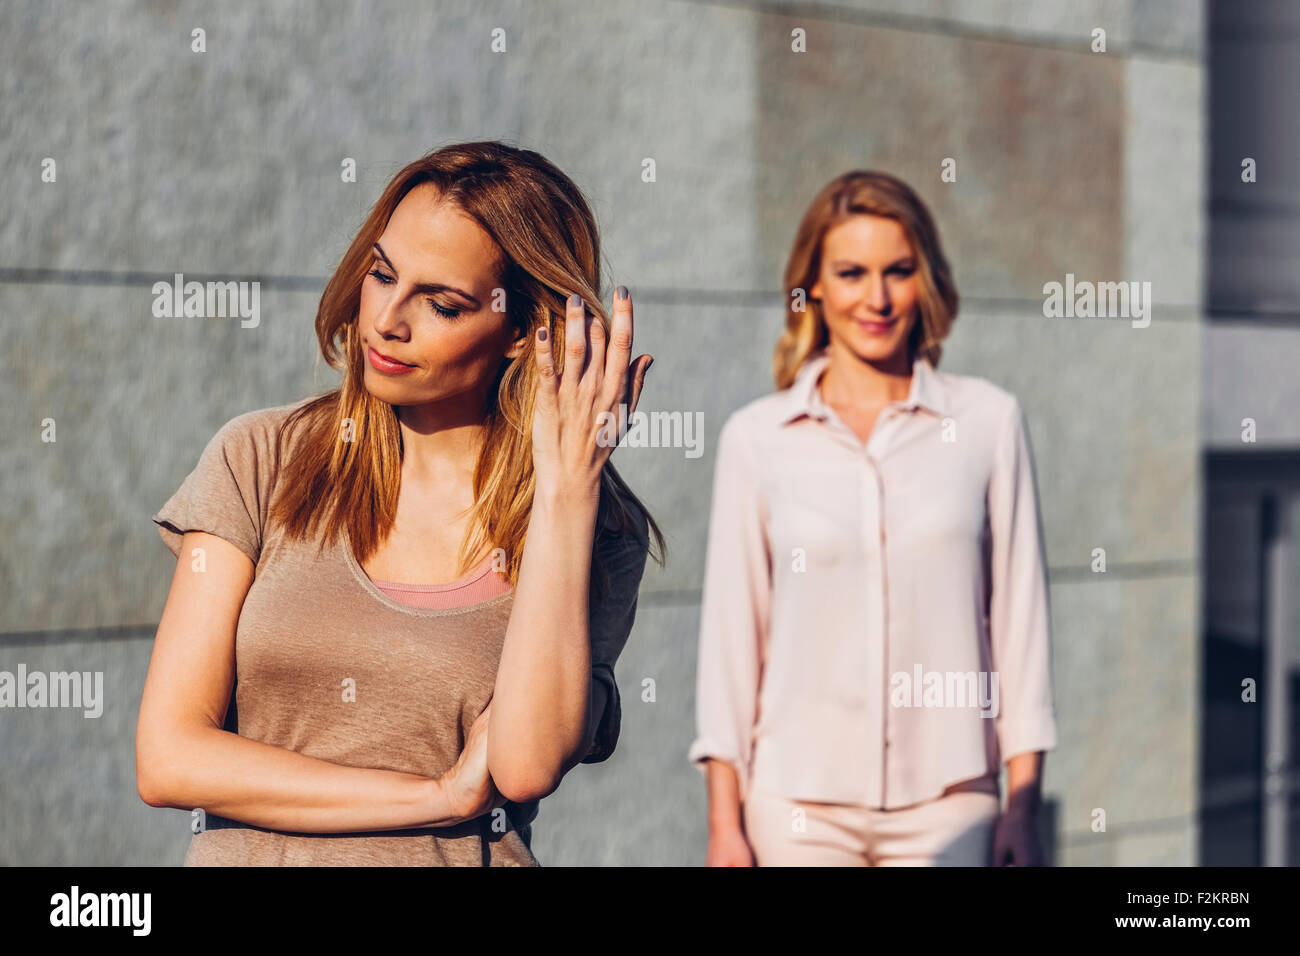 Serious blond woman outdoors with woman in background - Stock Image